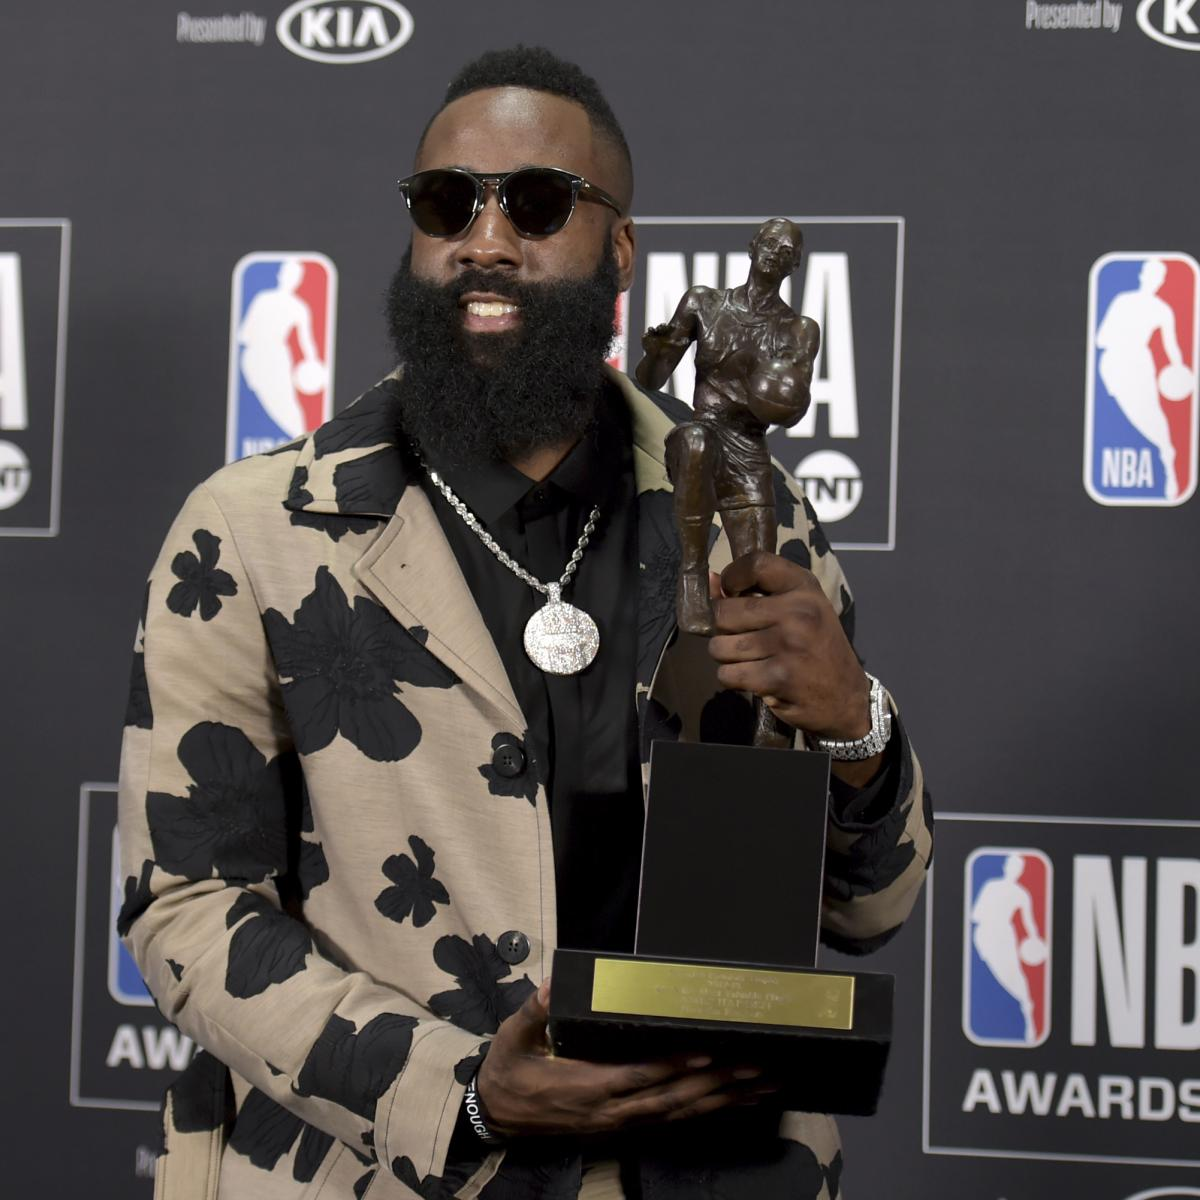 Nba Rookie Award Predictions For 2018 19 Season: NBA Awards Show 2019: Full List Of Awards And TV Schedule